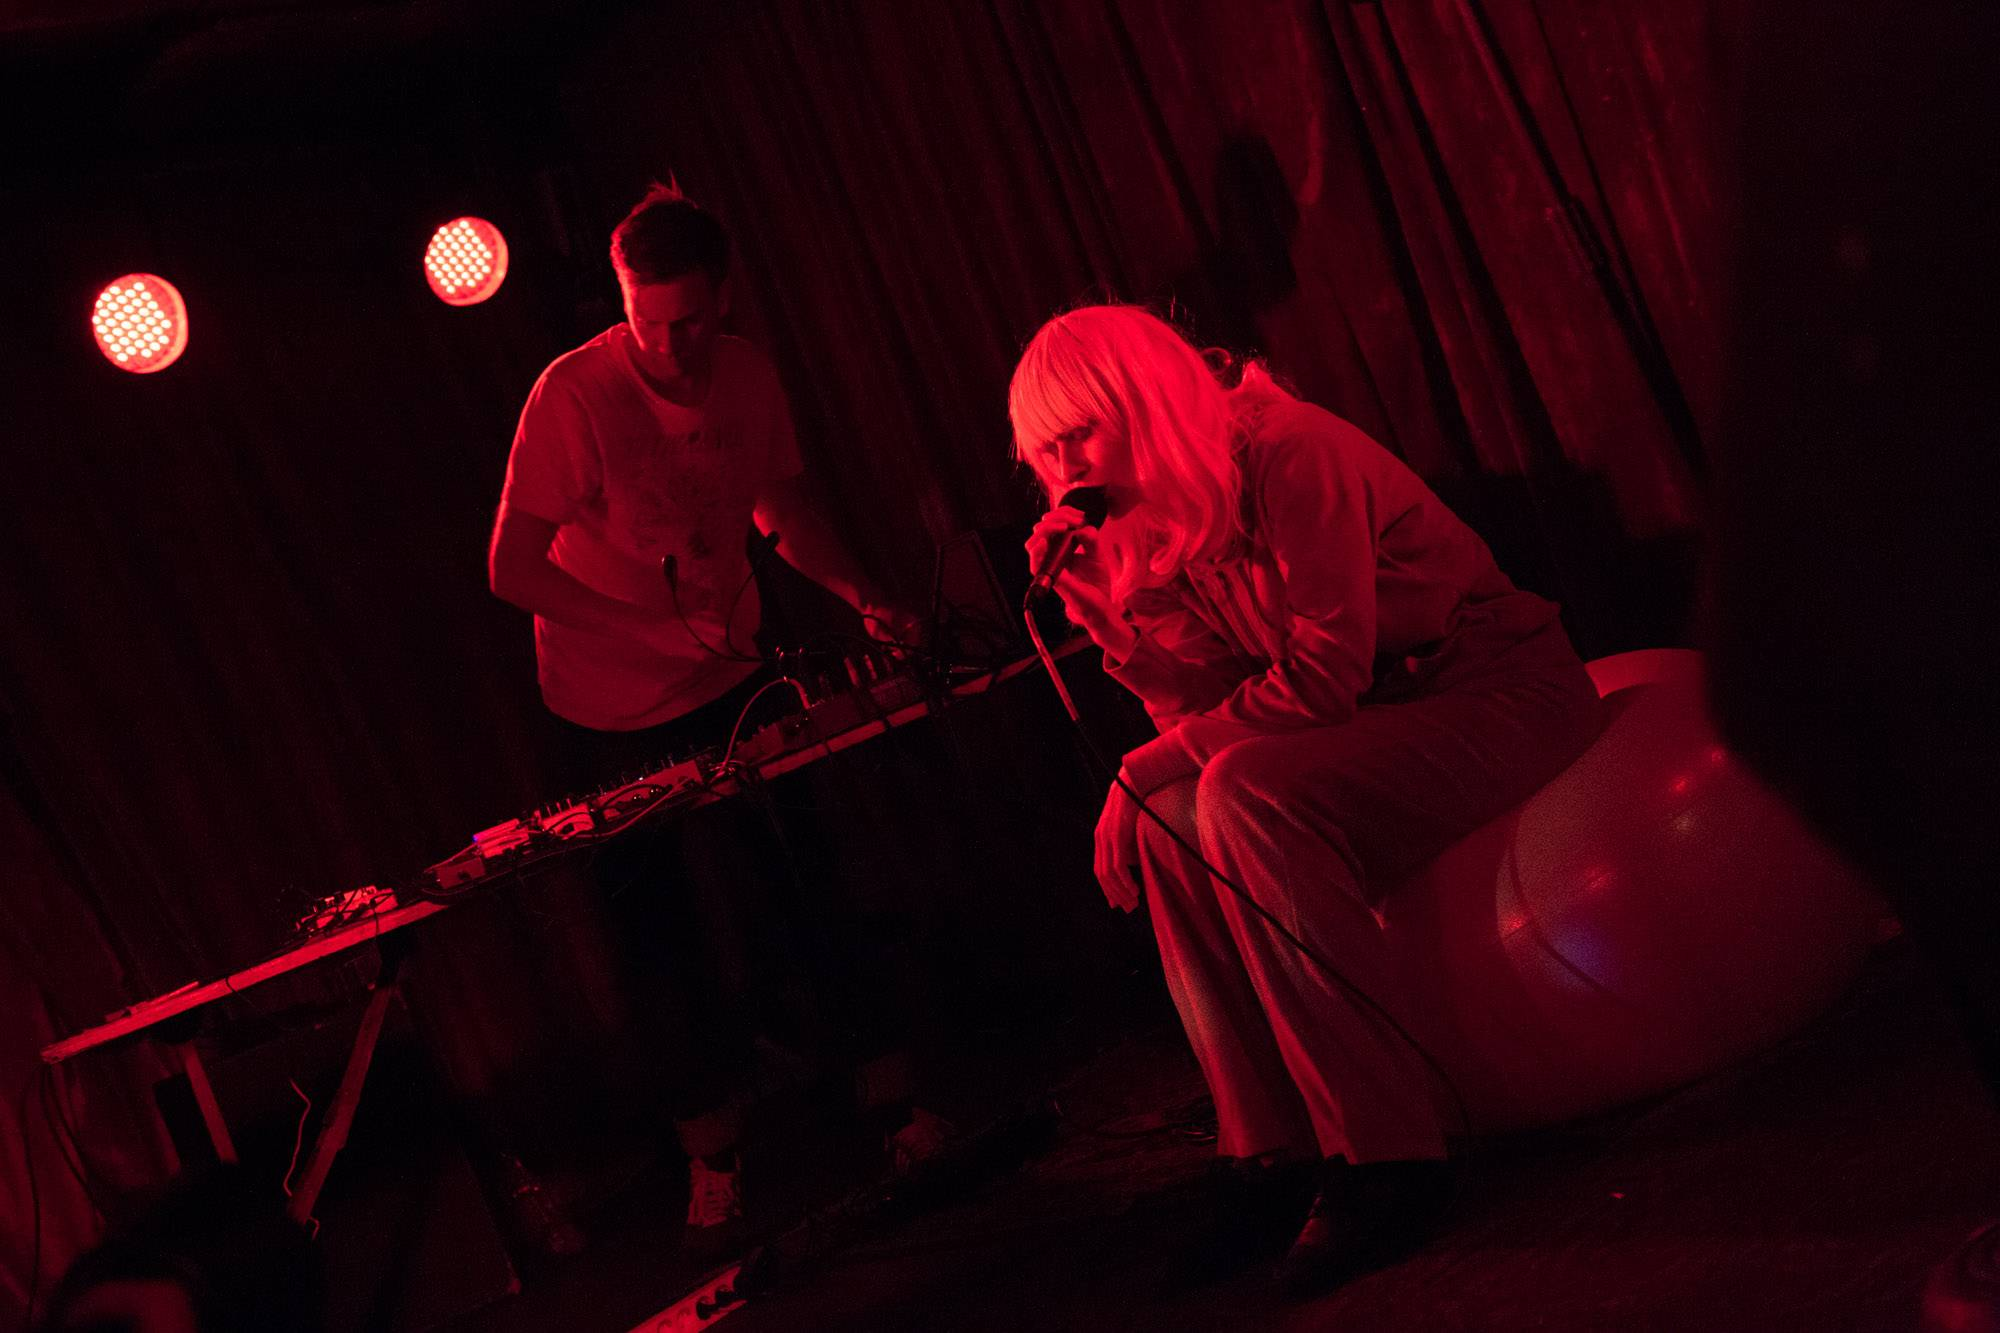 Jenny Hval at the Cobalt, Vancouver, Aug 28 2015. Kirk Chantraine photo.